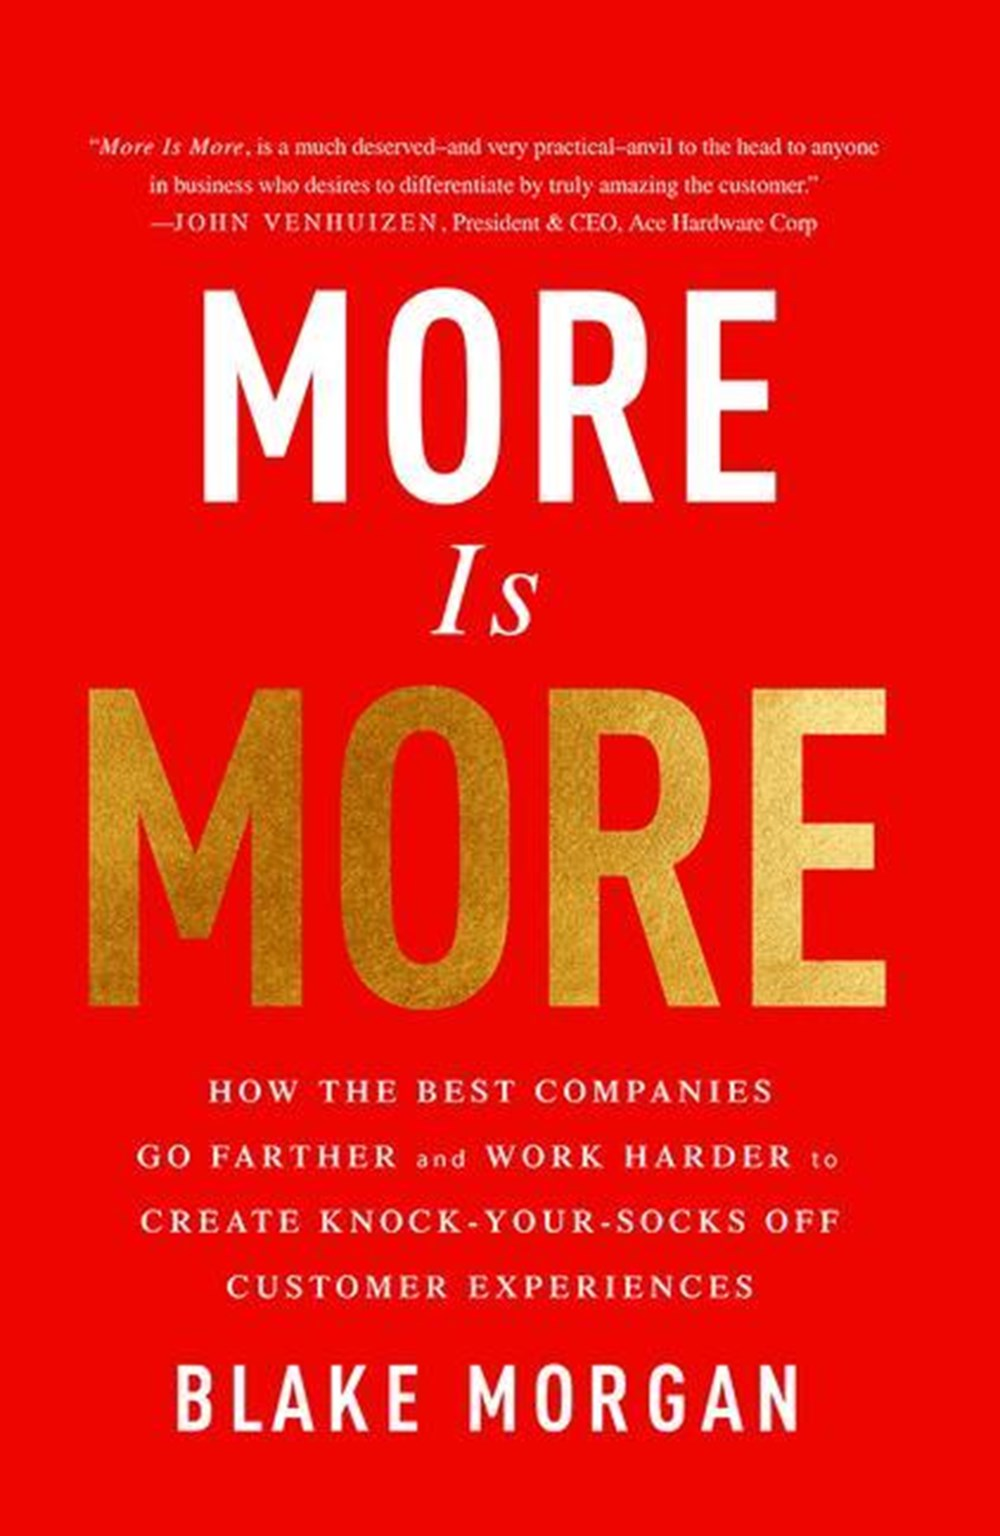 More Is More How the Best Companies Go Farther and Work Harder to Create Knock-Your-Socks-Off Custom